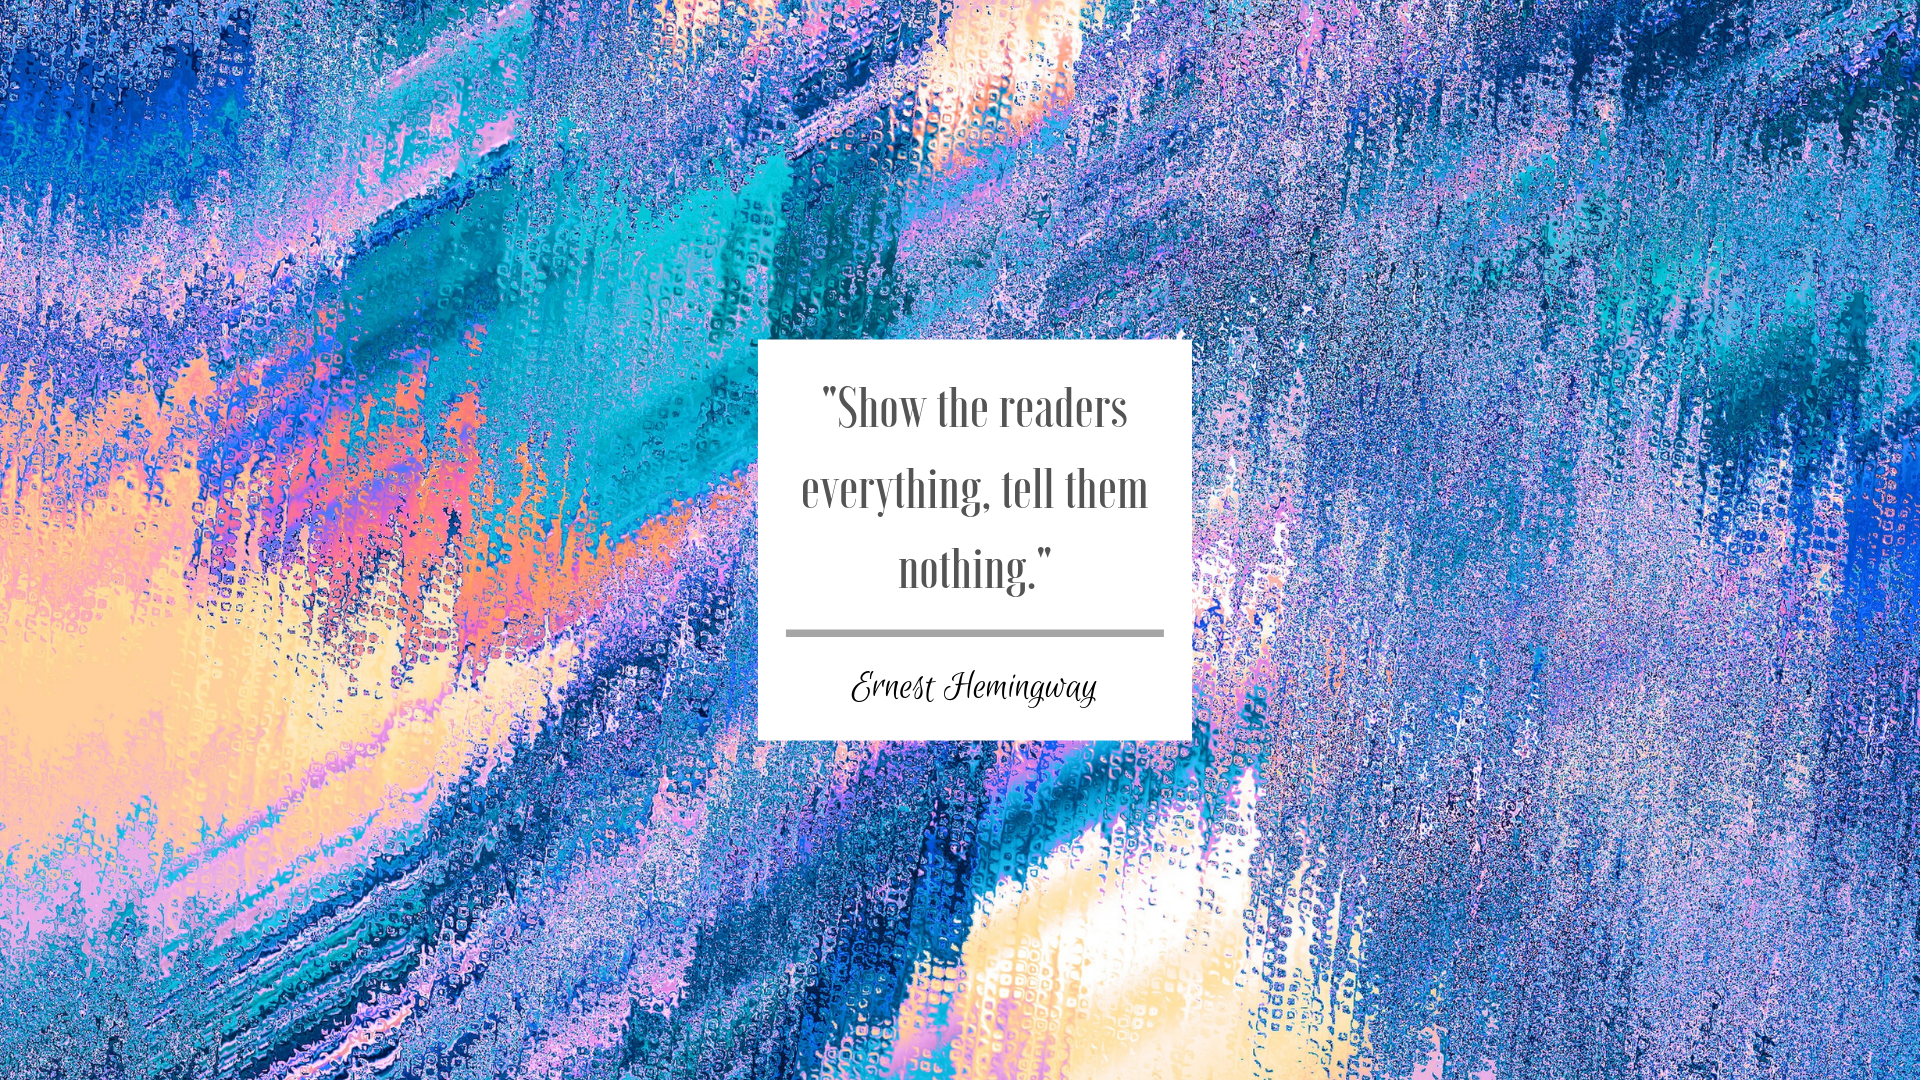 "Abstract background with colors of blue, pink, yellow, orange and purple. The white box in the middle is a quote by Ernest Hemingway, ""Show the readers everything, tell them nothing."""